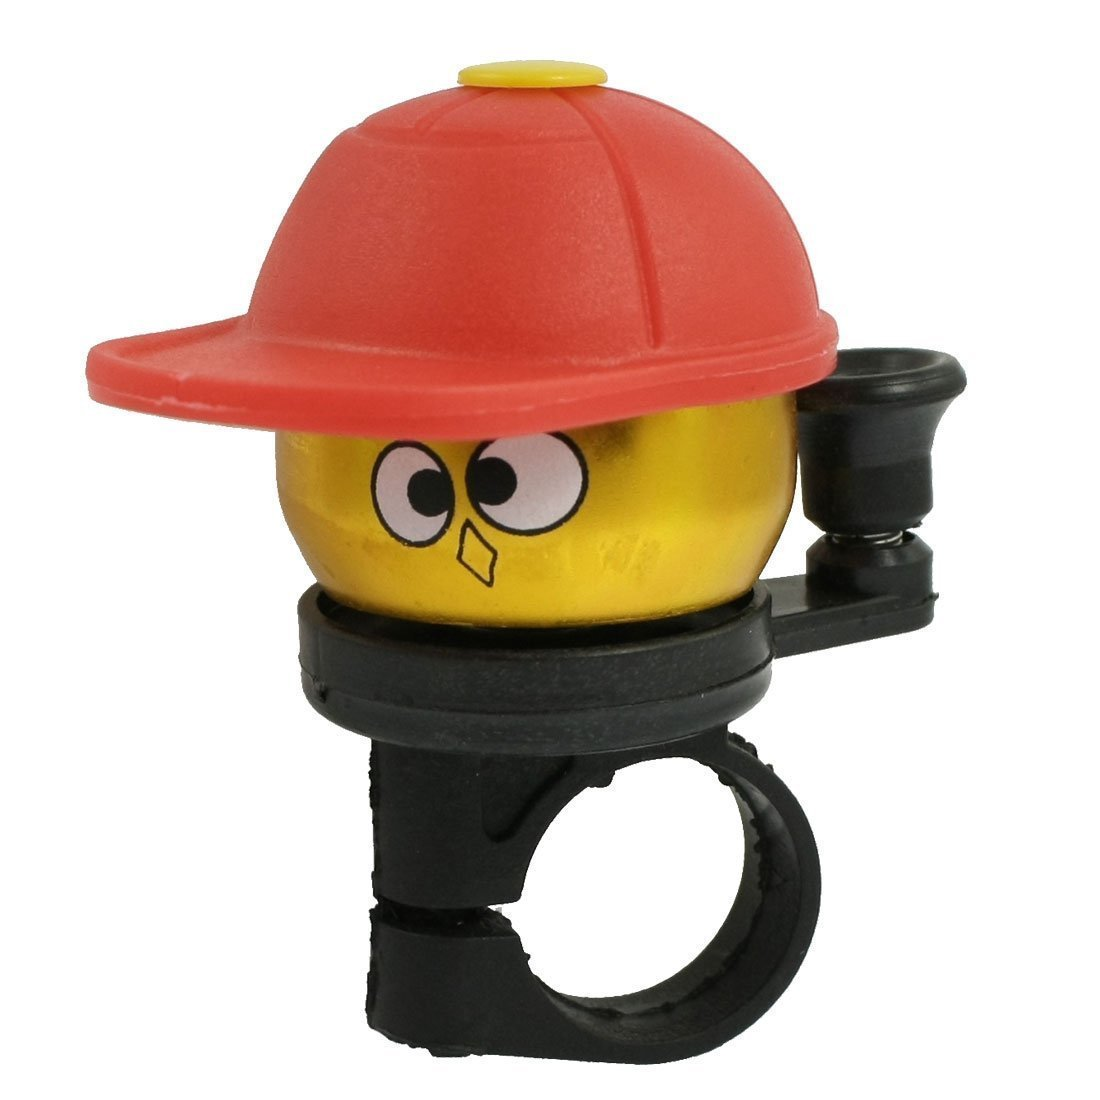 SODIAL(R) Gold Tone Red Hatted Cartoon Boy Design Alloy Housing Bike Bicycle Bell Ring